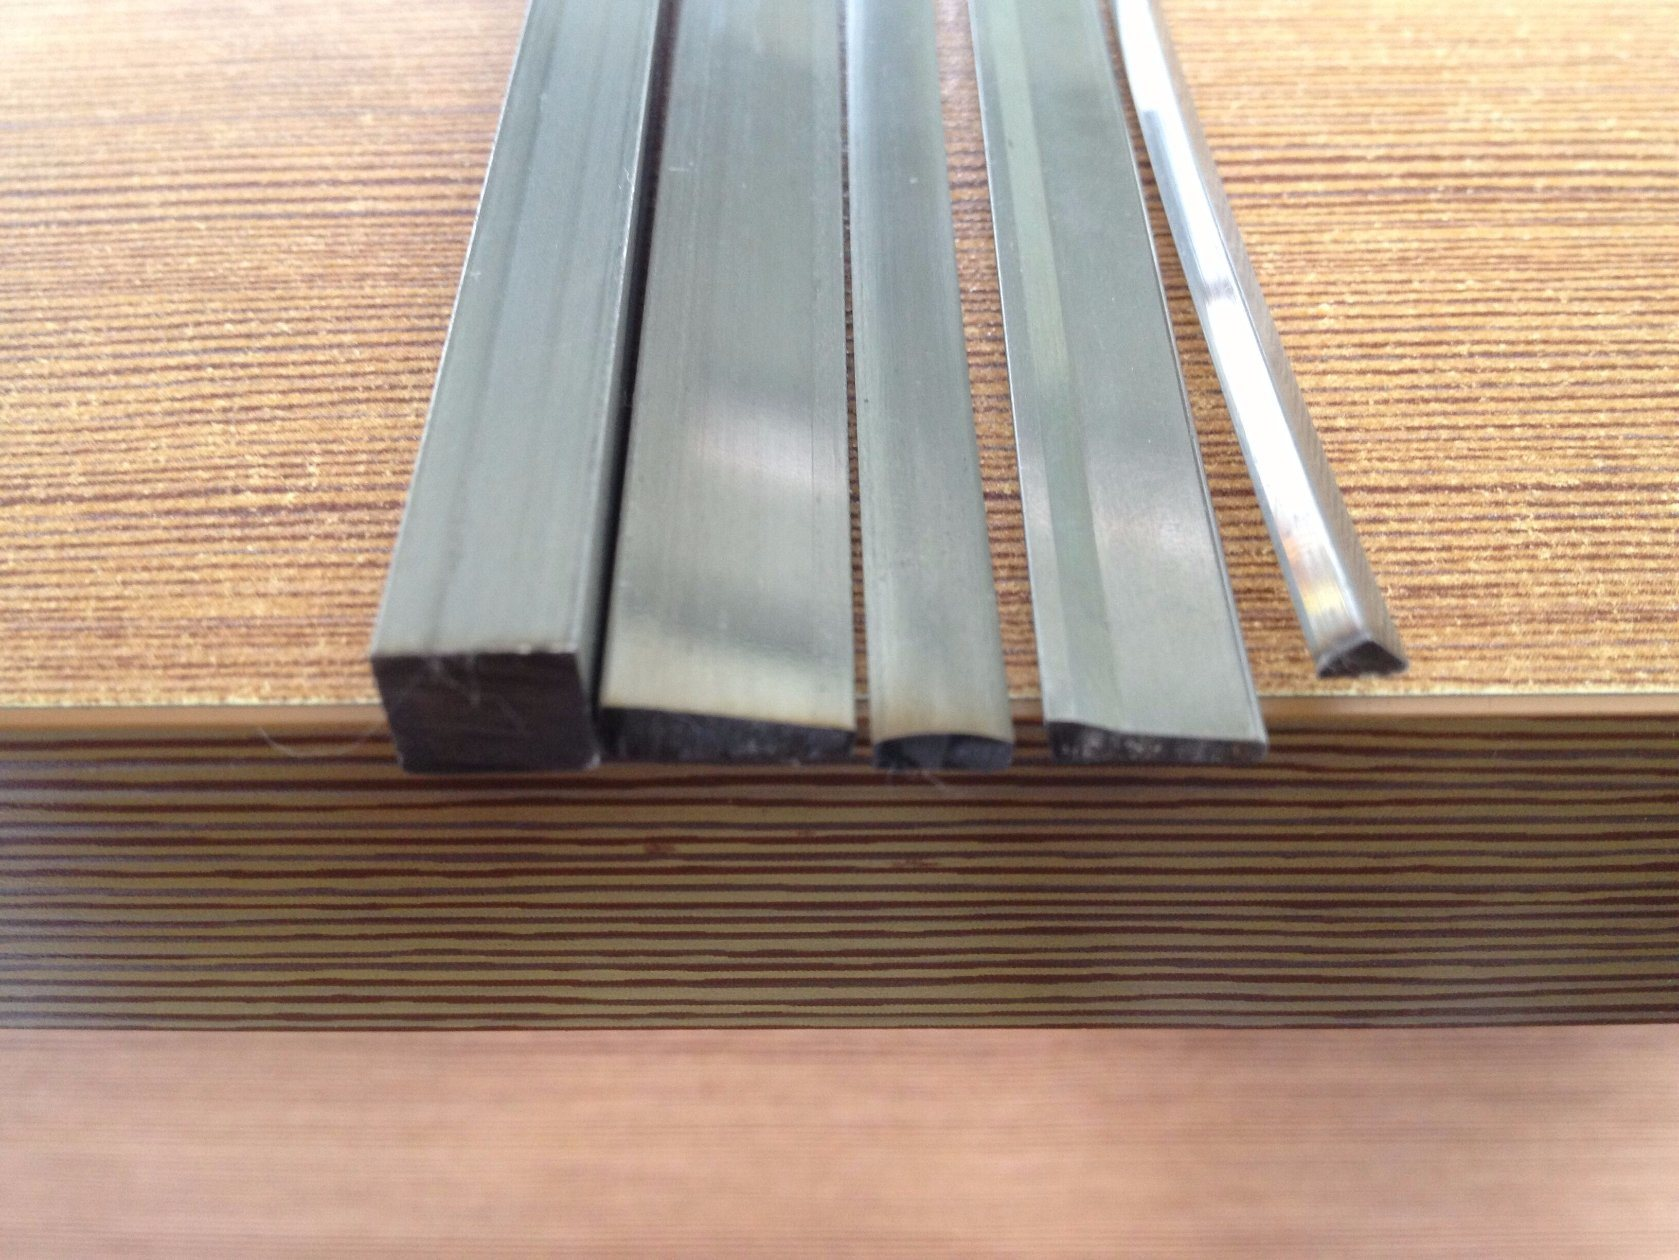 SUS303 Stainless Steel Profiled Bar